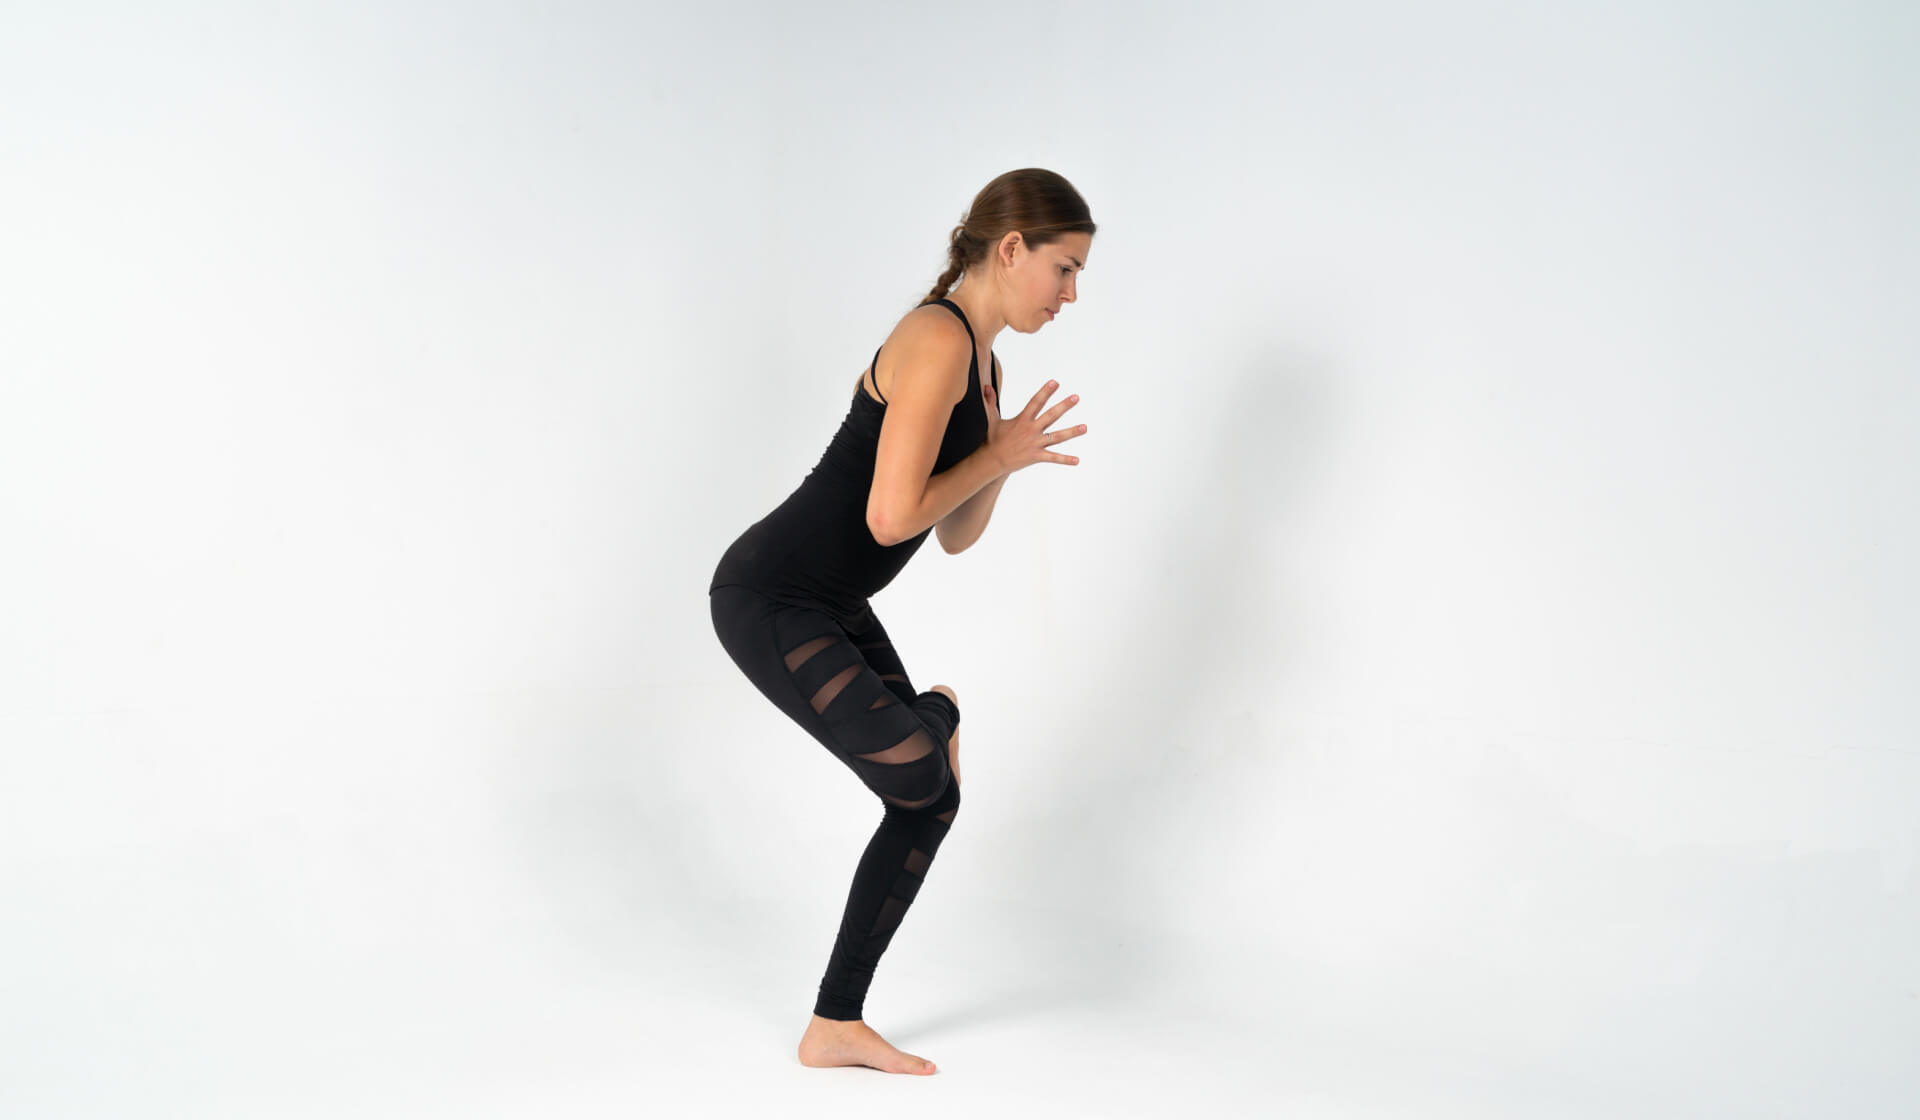 Woman yoga teacher dressed in all black practicing a yoga balance (standing figure-4 pose) against a white backdrop